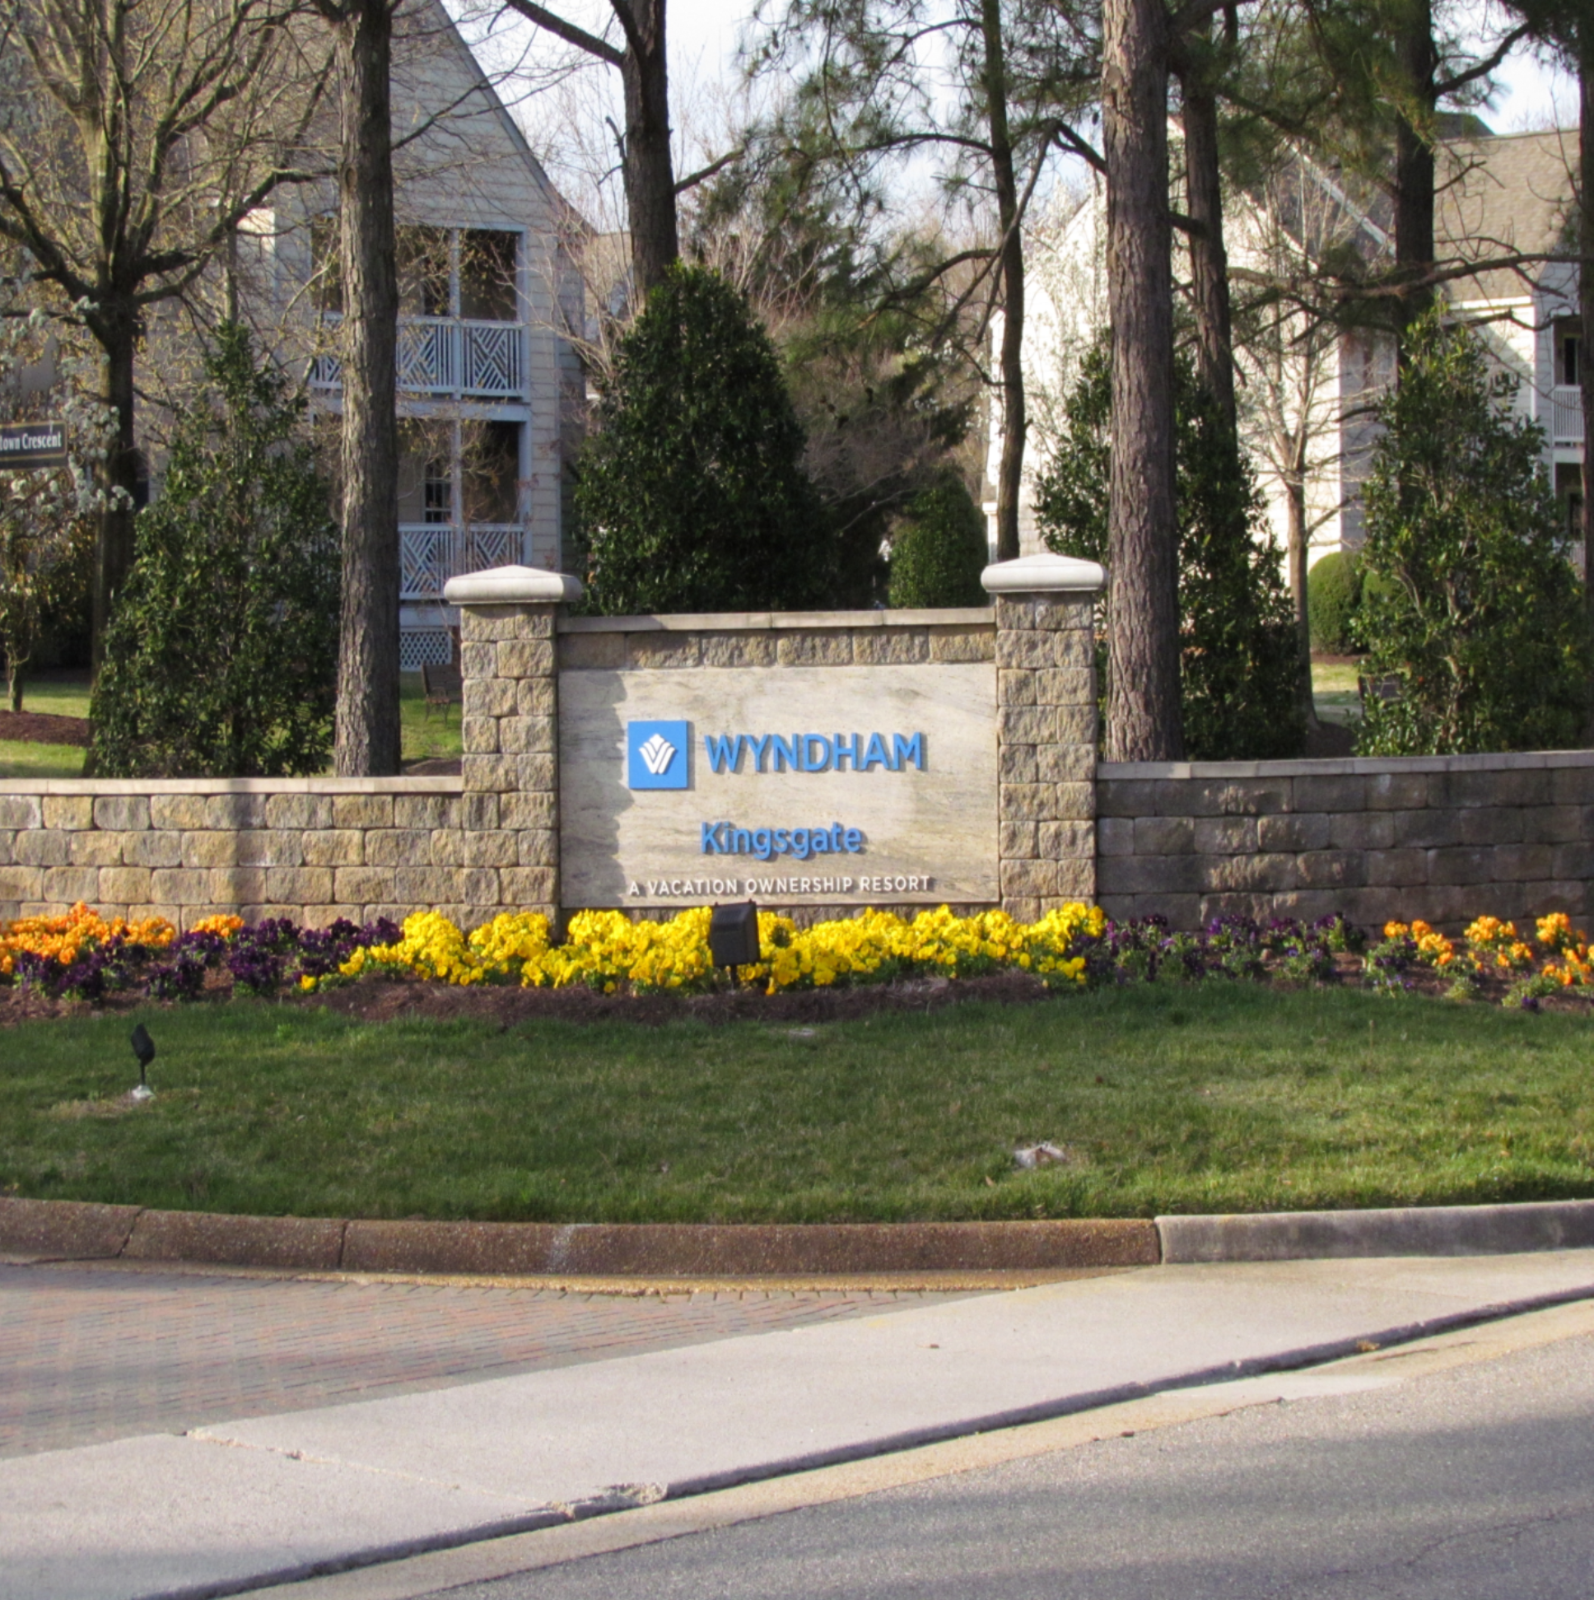 Wyndham Kingsgate, March 11-14, 2B, Williamsburg, VA, Other Dates Available - $299.00